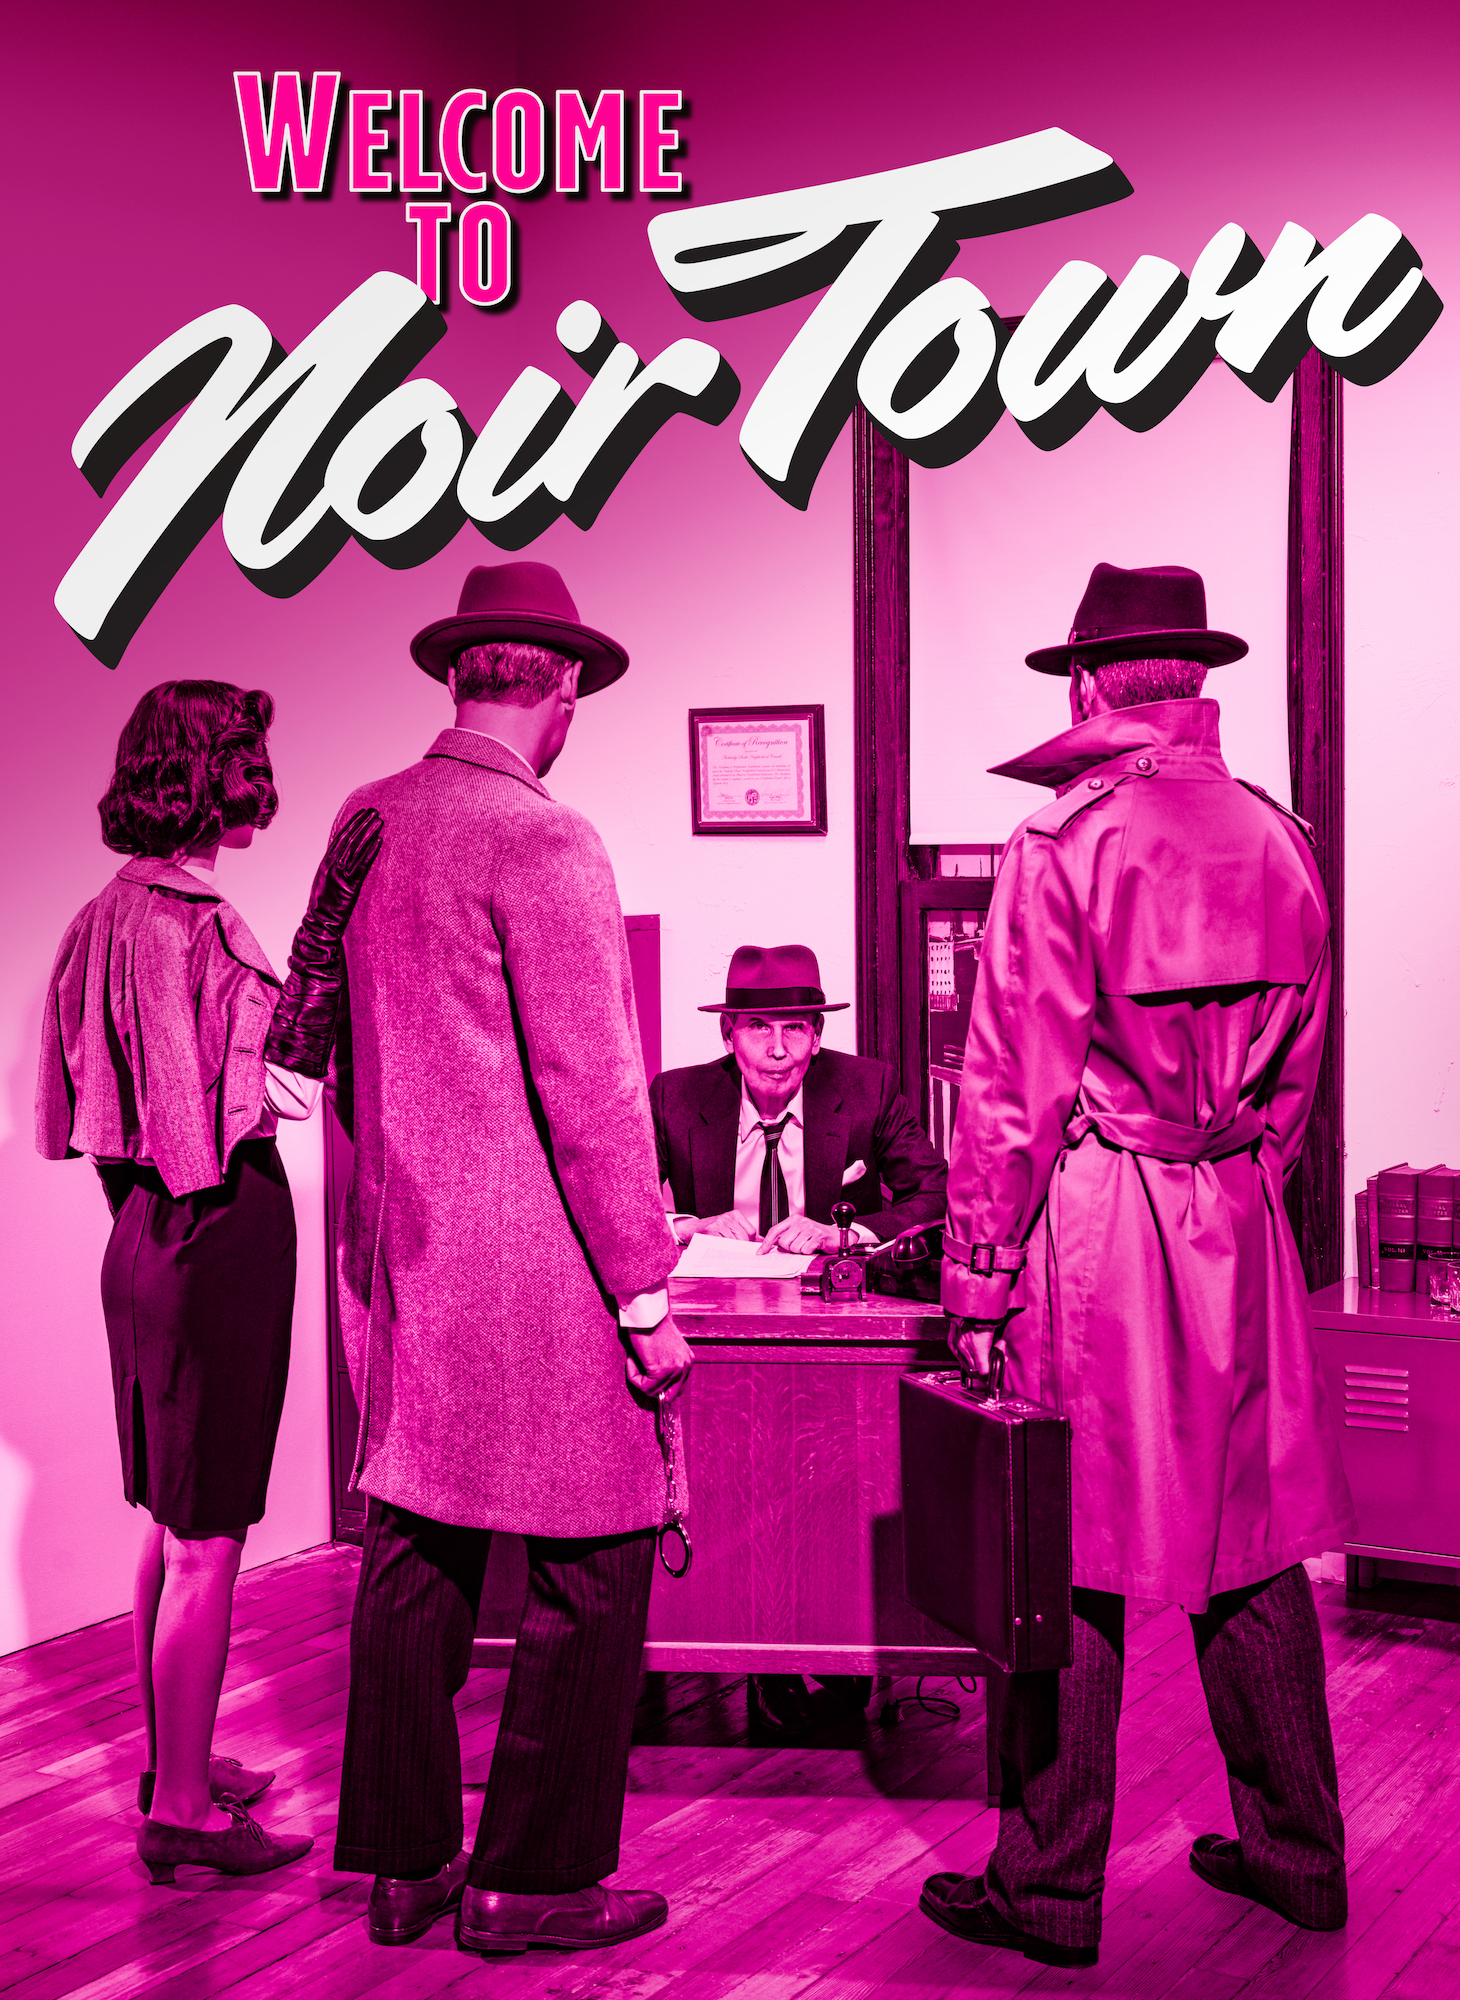 FULL NOIRTOWN POSTER.jpg